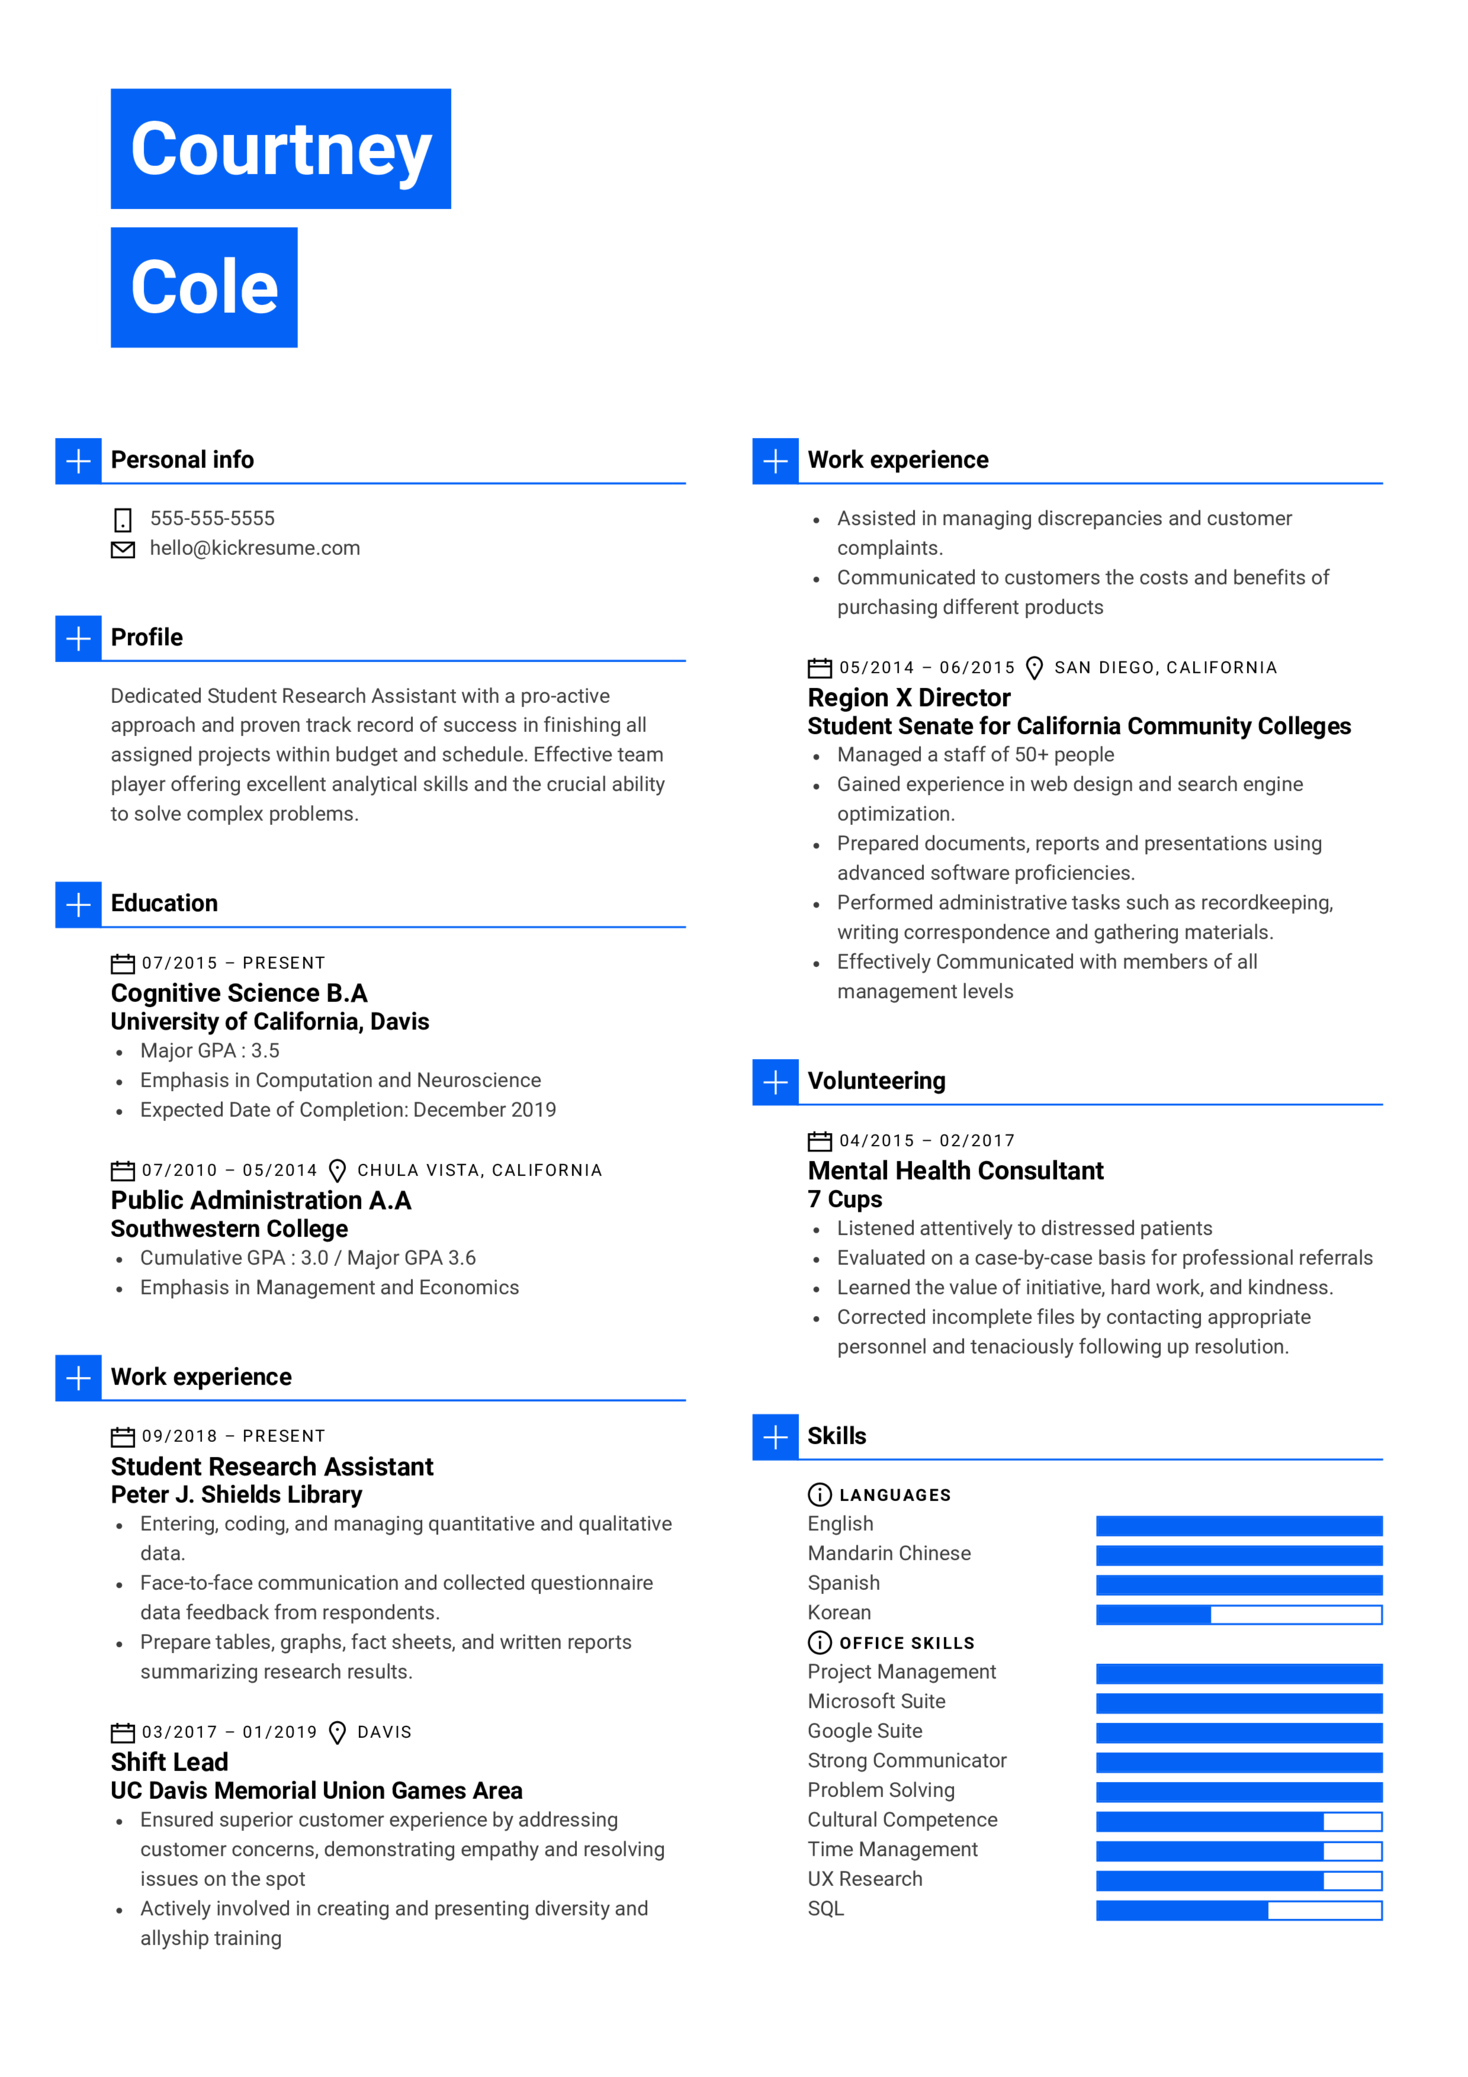 Student Research Assistant at University of California Resume Example